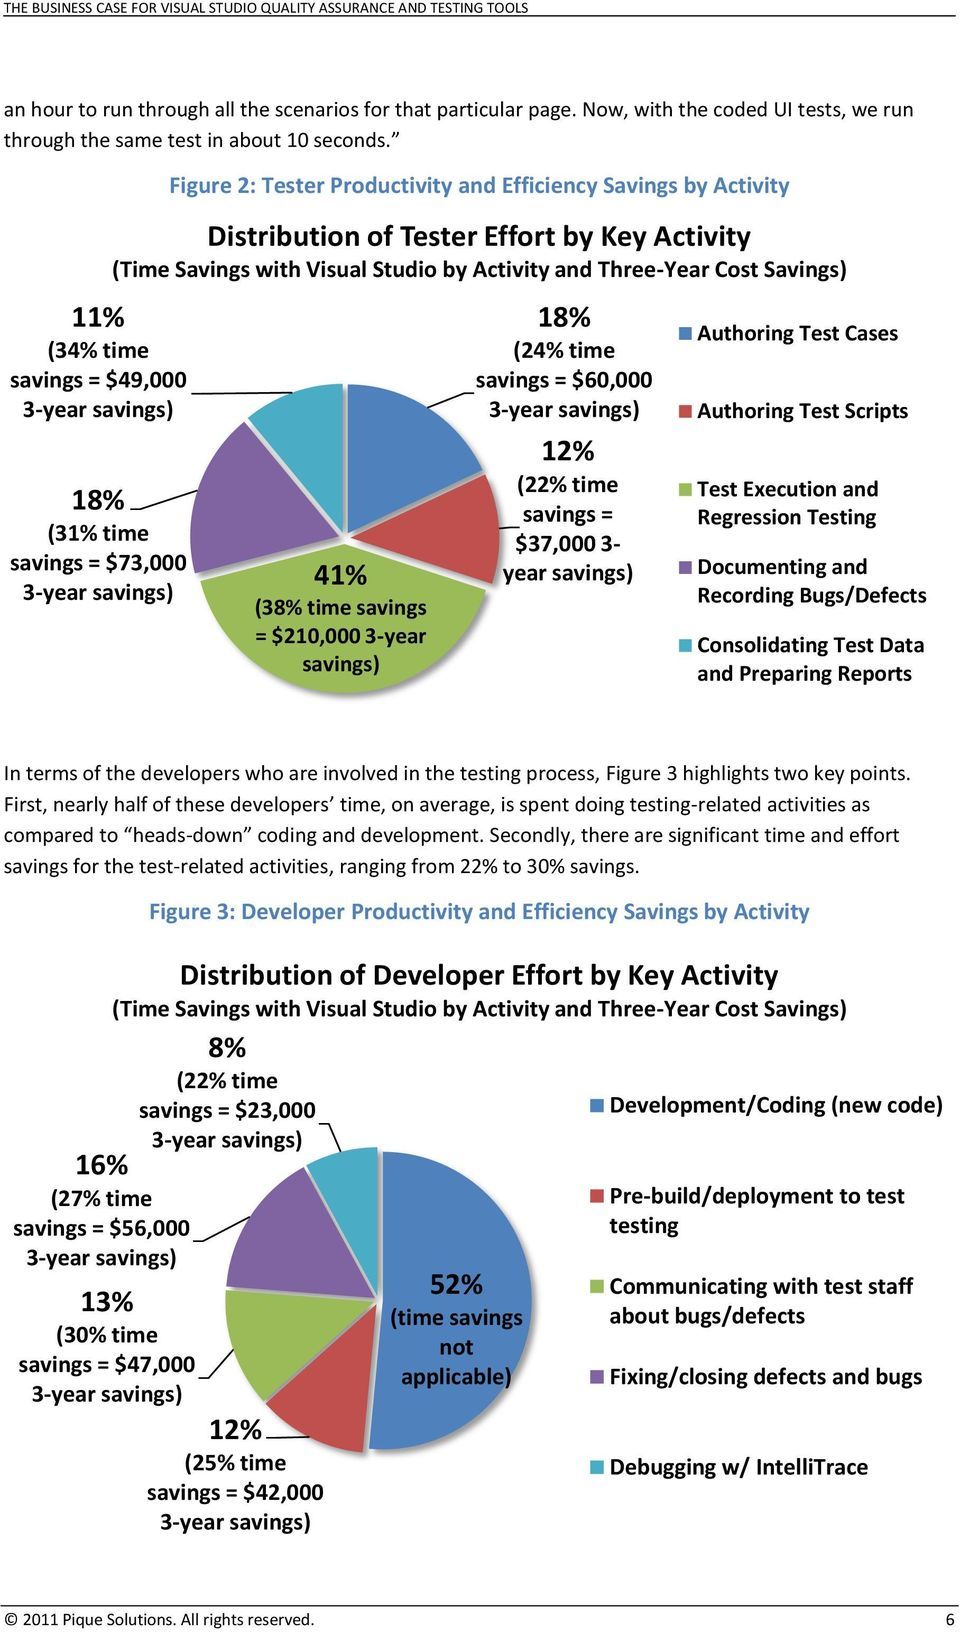 Activity (Time Savings with Visual Studio by Activity and Three-Year Cost Savings) 41% (38% time savings = $210,000 3-year savings) 18% (24% time savings = $60,000 3-year savings) 12% (22% time